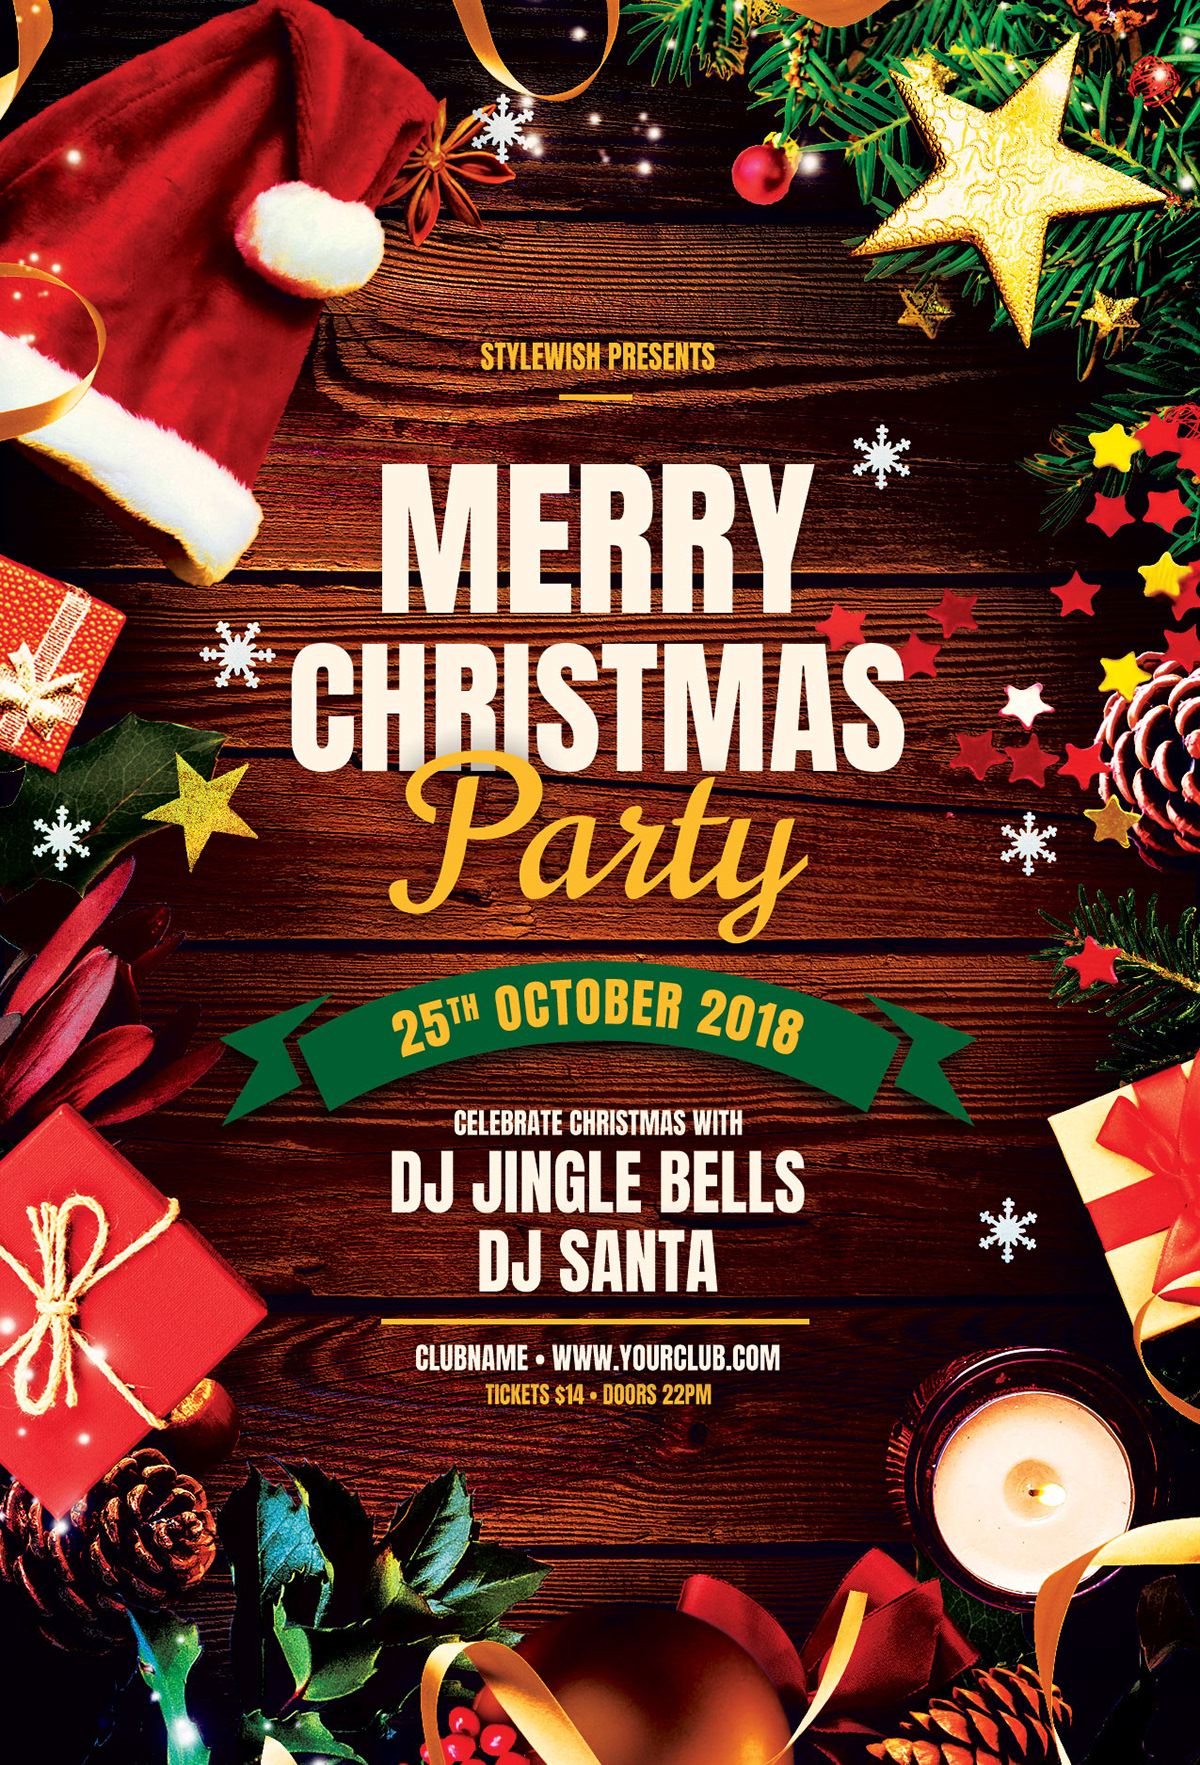 Merry Christmas Party Flyer On Behance